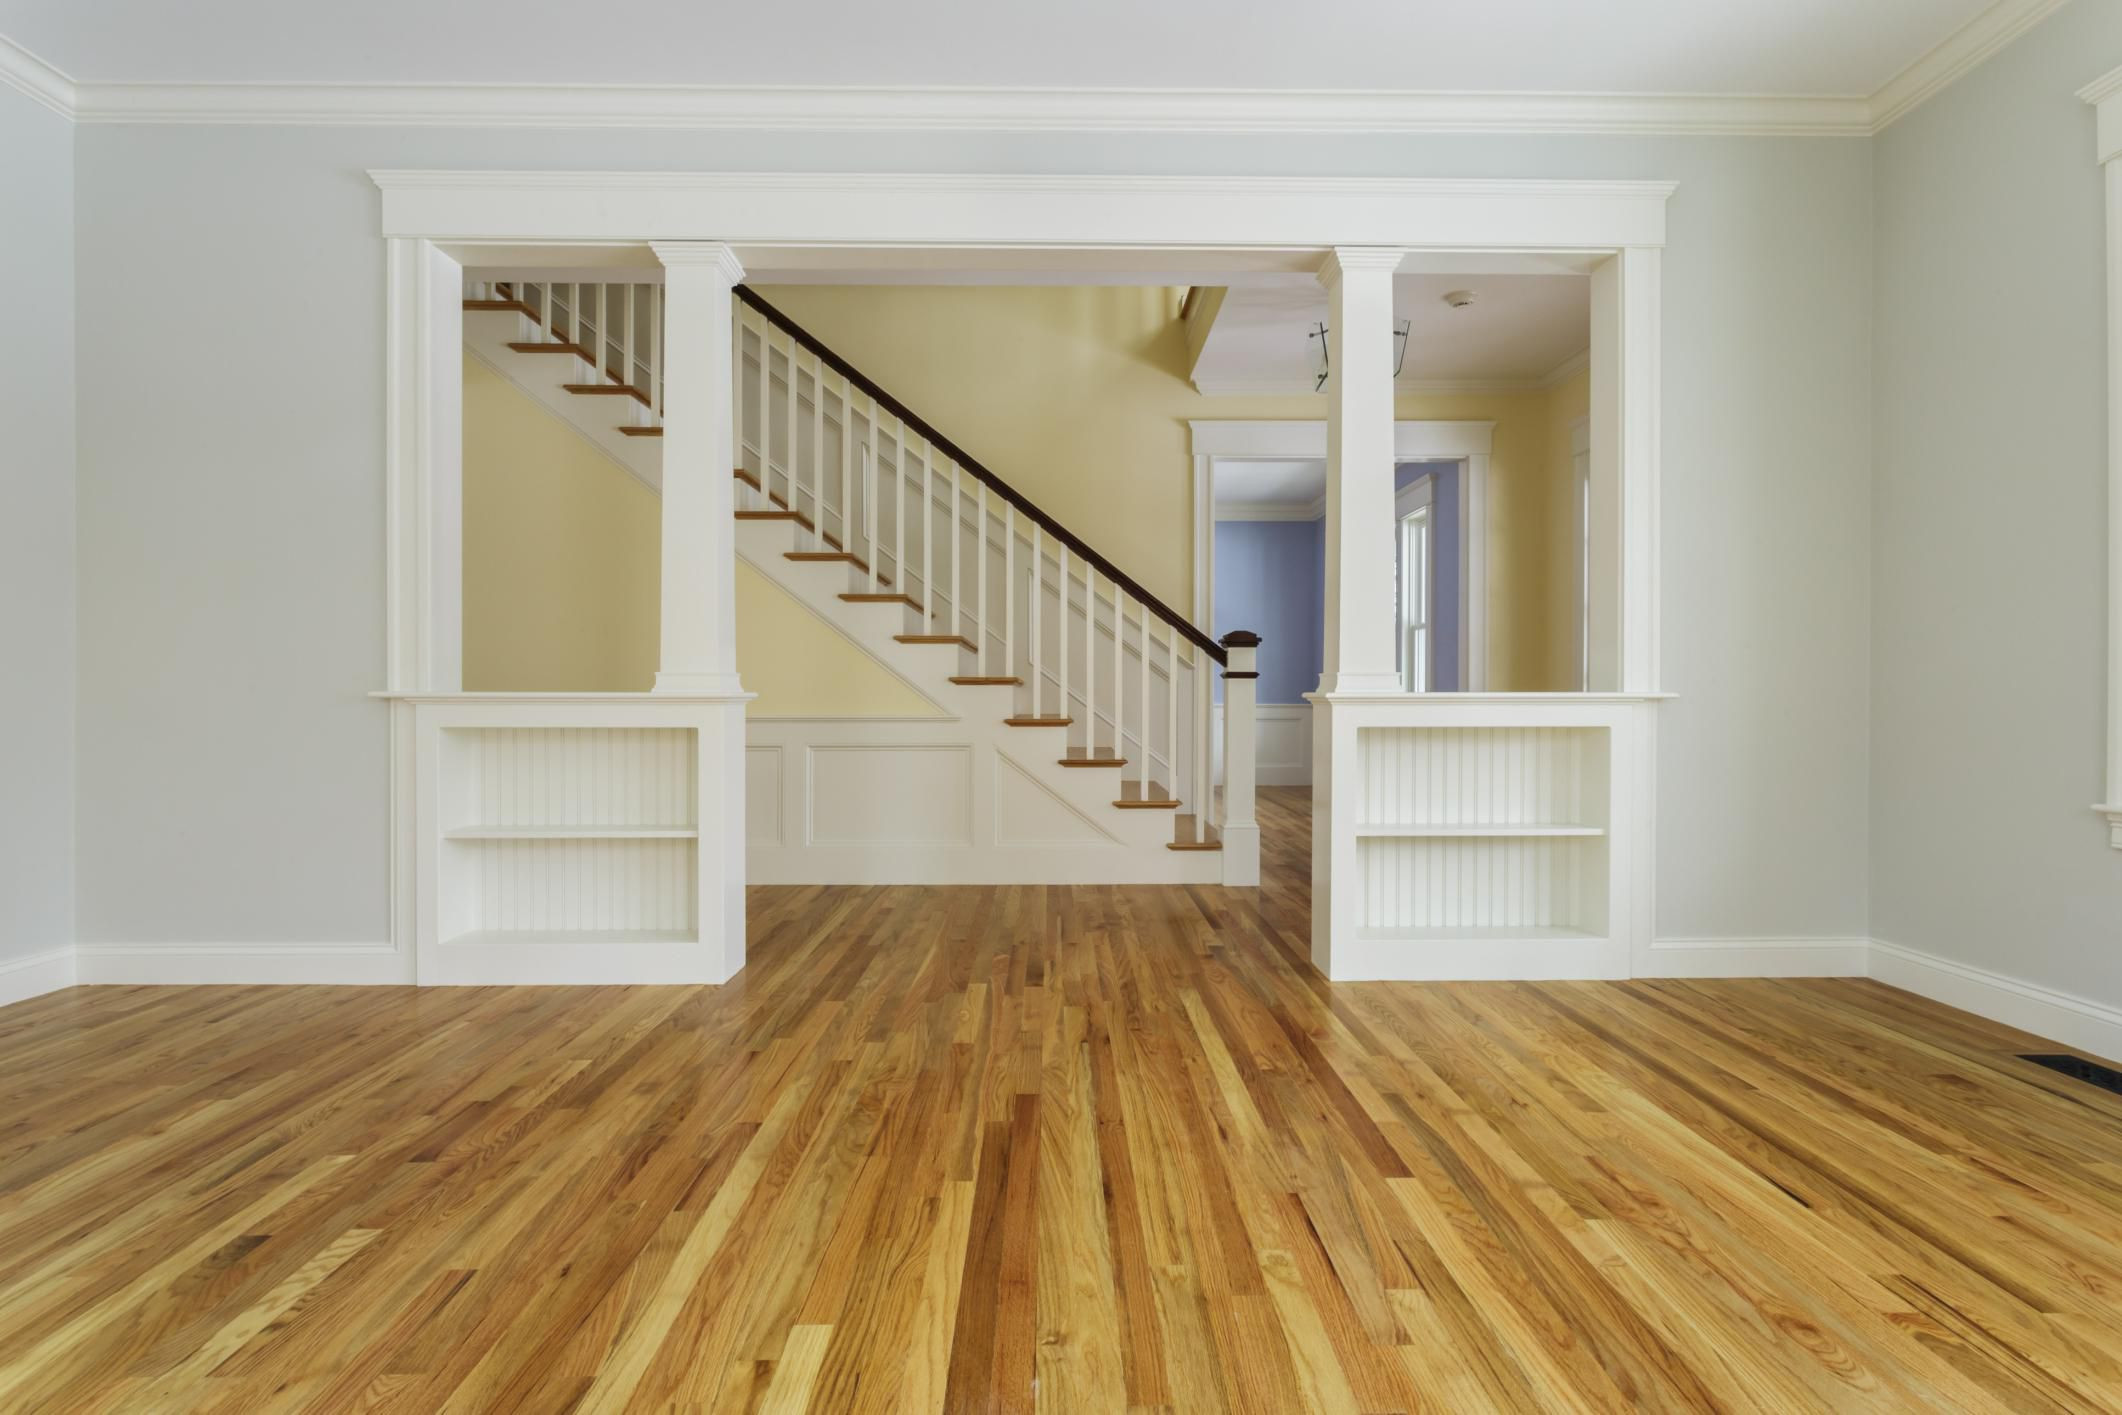 popular types of hardwood floors of guide to solid hardwood floors pertaining to 168686571 56a49f213df78cf772834e24